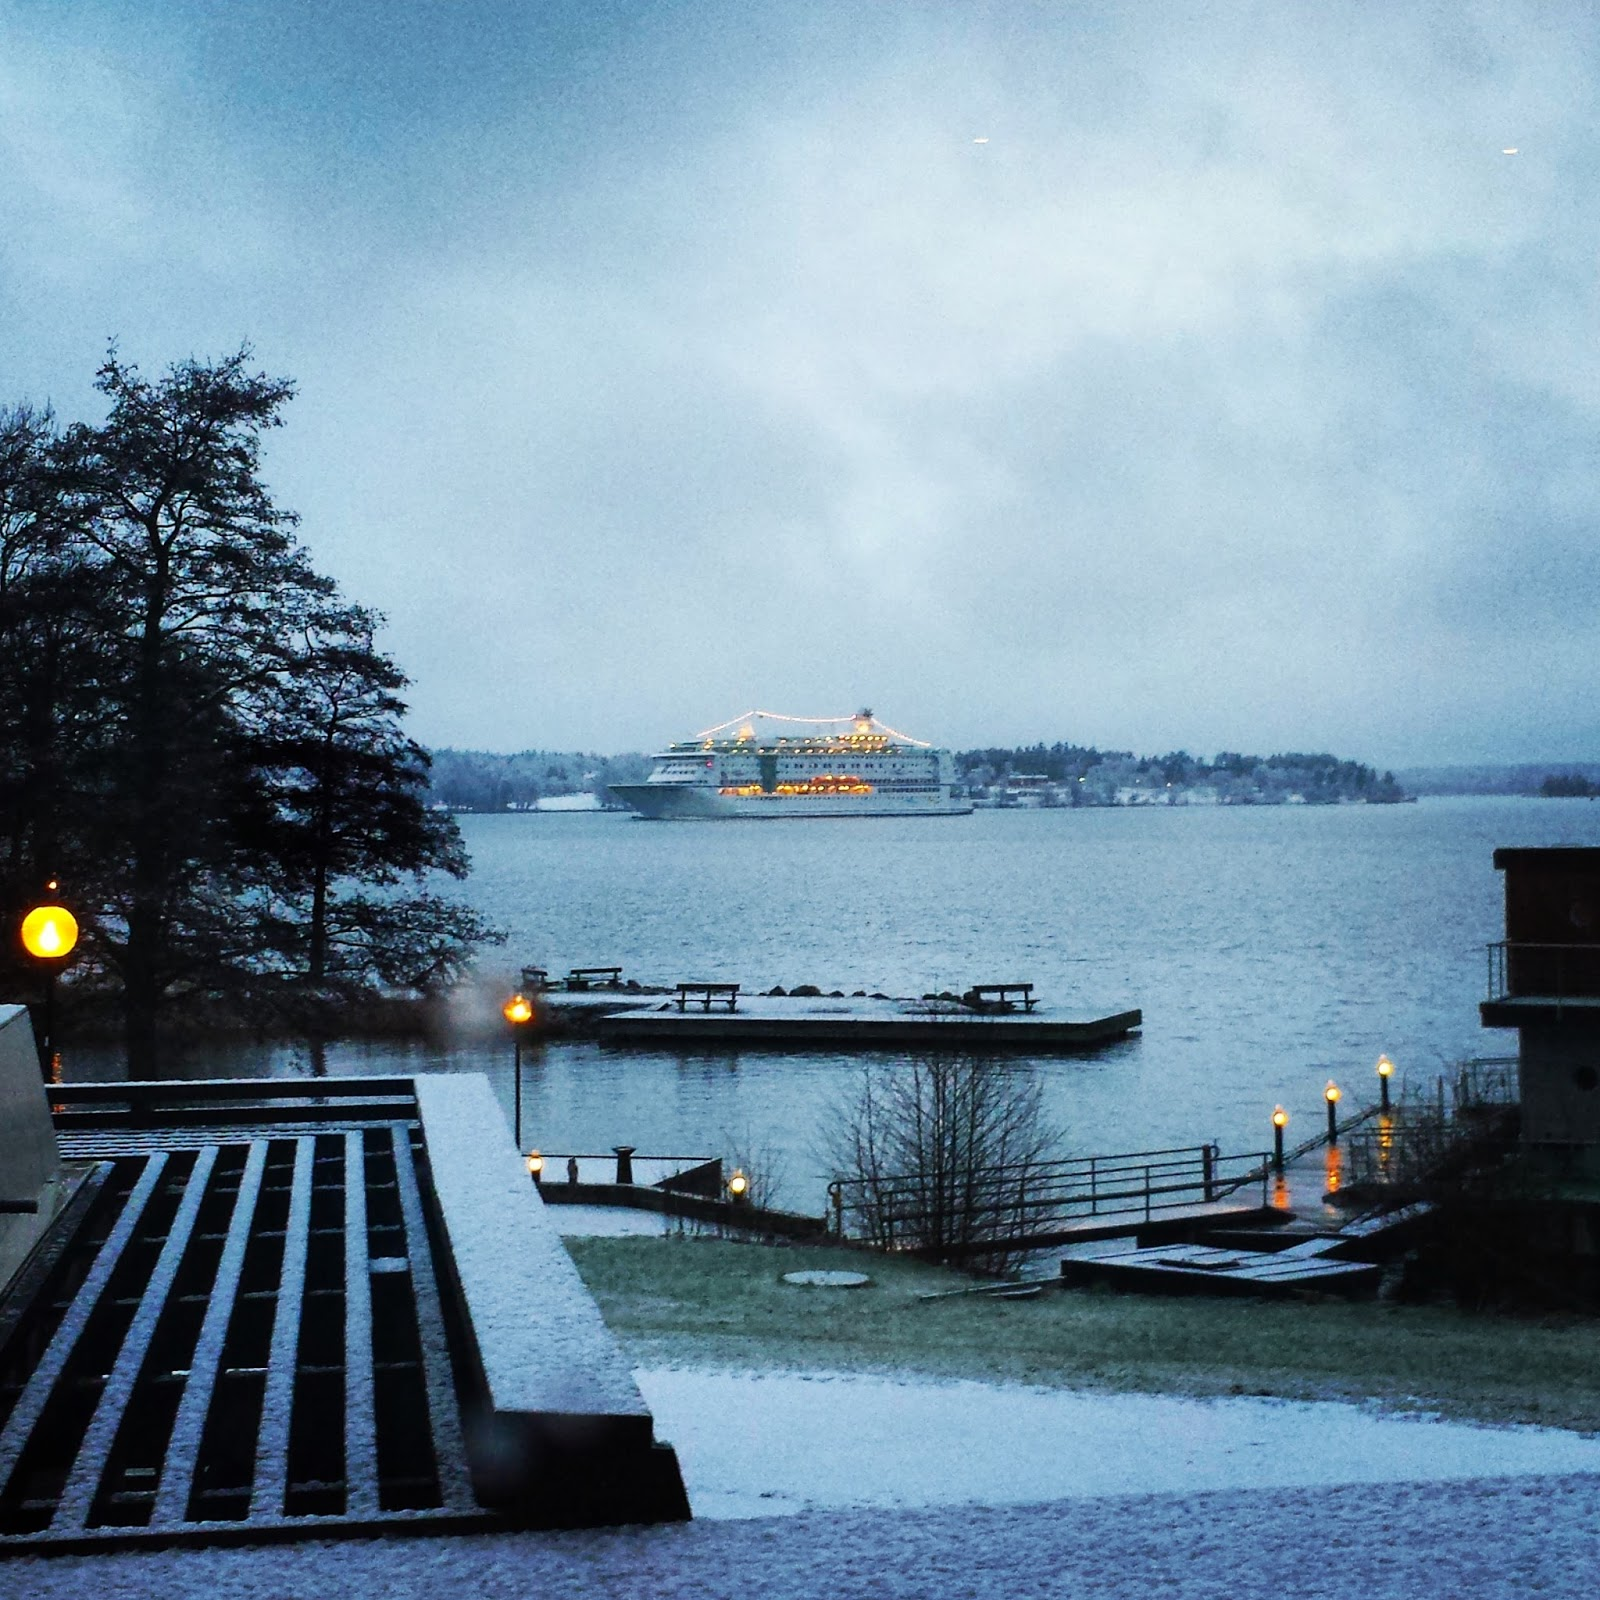 Skepparholmen Spa Hotel outdoor heated pool view in Nacka, Stockholm + Swedish sauna customs  |  Swedish sauna rituals and snow flurries by the sea on afeathery*nest  |  http://afeatherynest.com